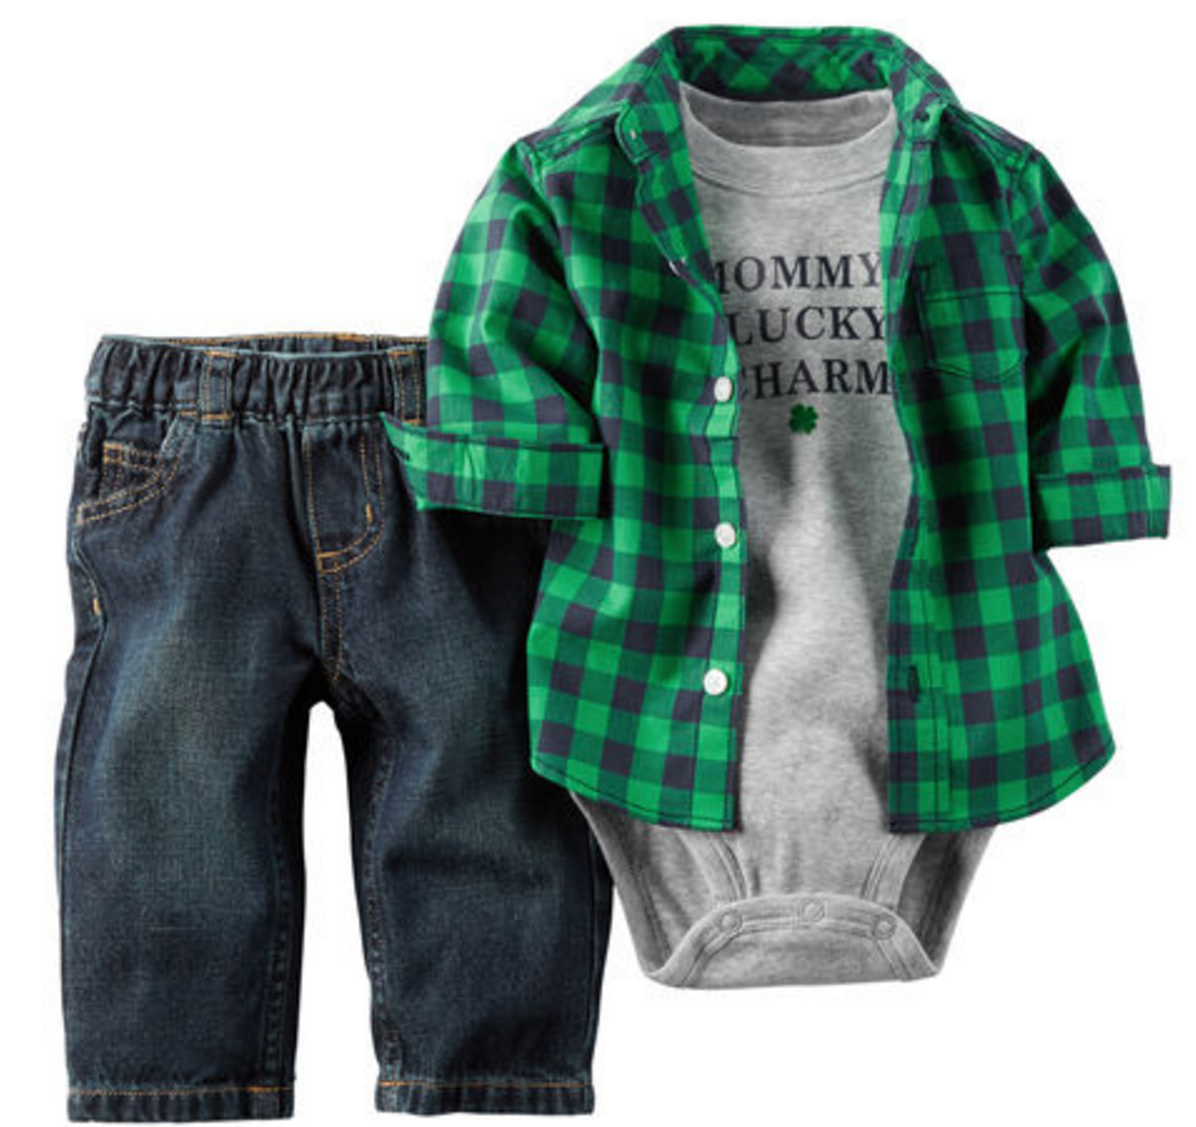 Tanger Outlets Gap Factory boy st. patricks day outfit